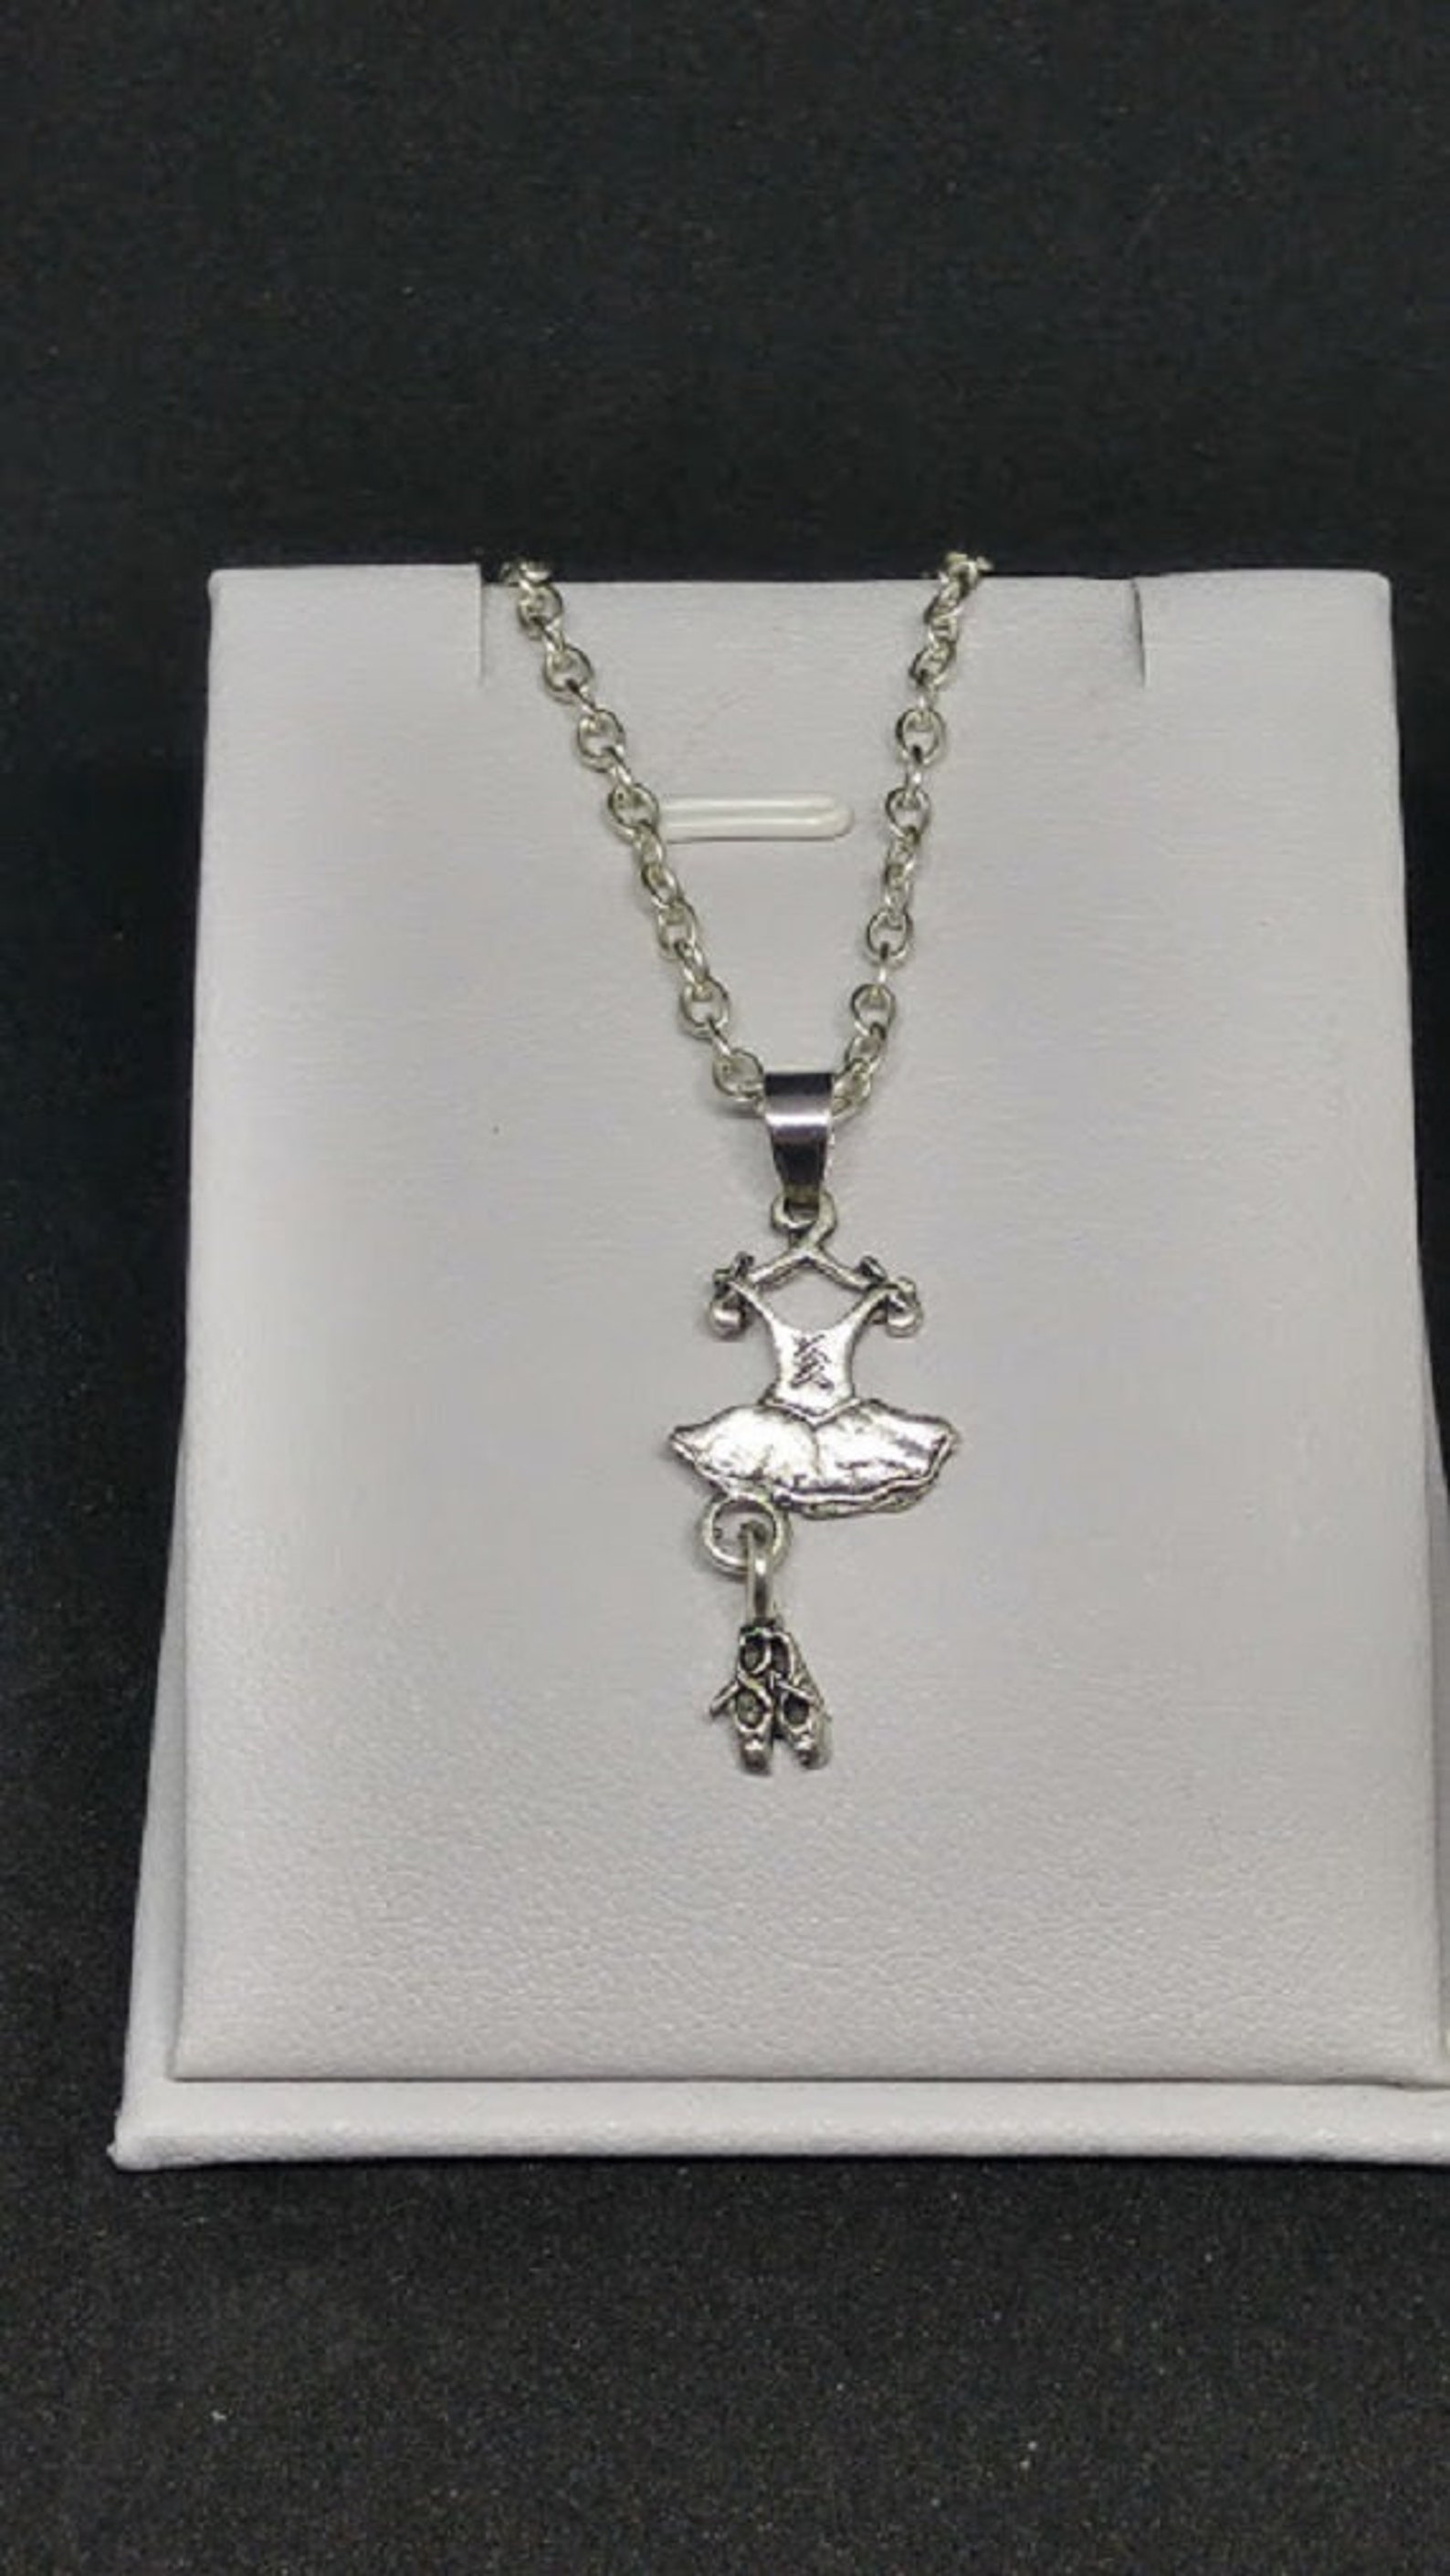 ballet tutu with ballet slippers, shoes, ballerina, charm, pendant with .925 necklace - r650